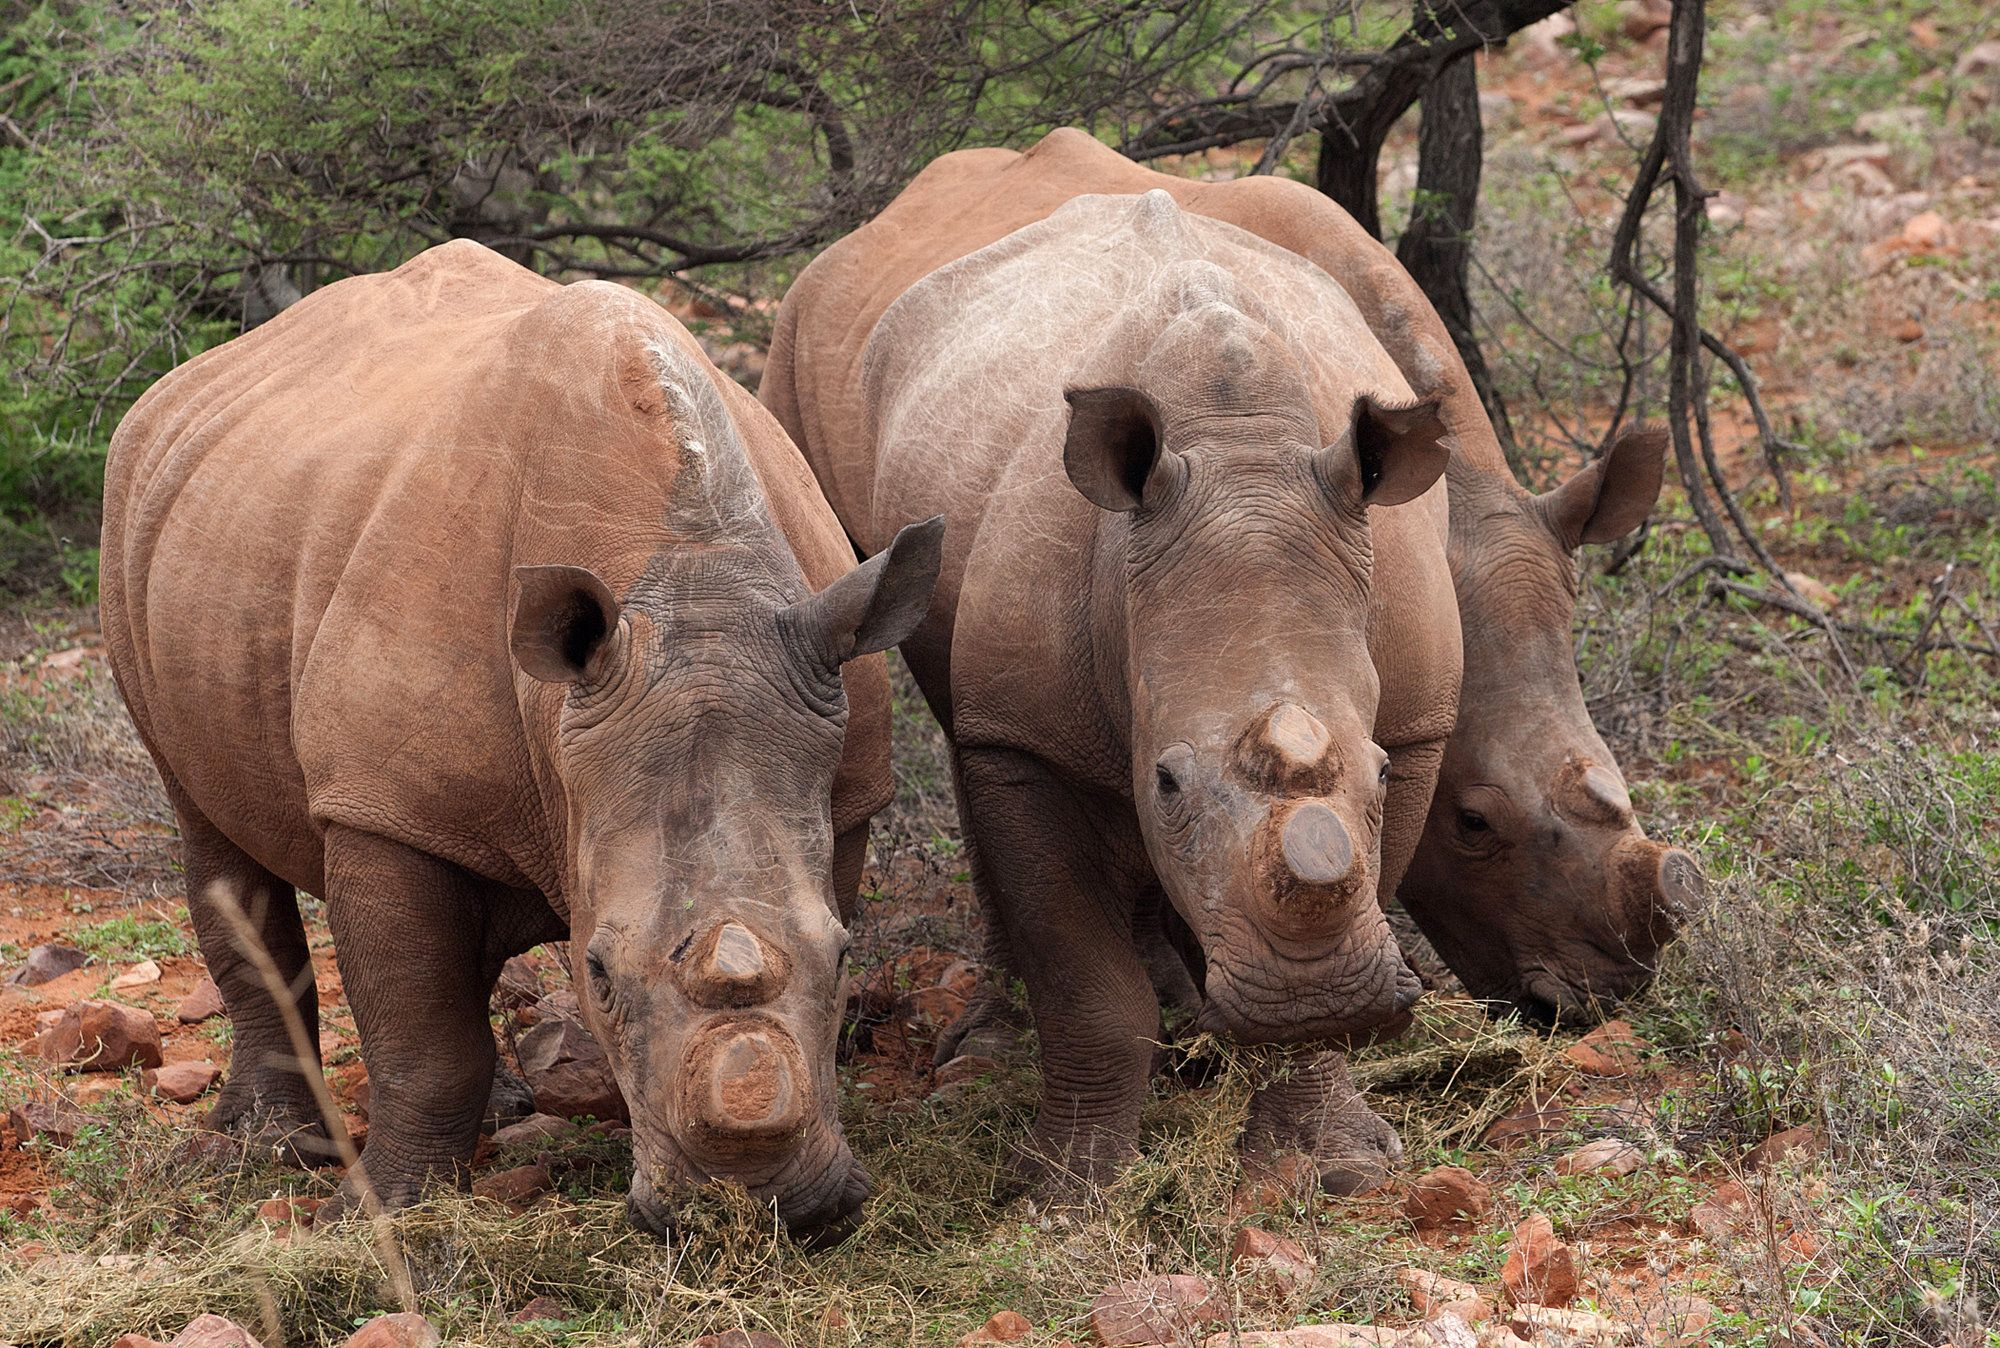 Southern African Nations Threaten to Leave Global Wildlife Pact